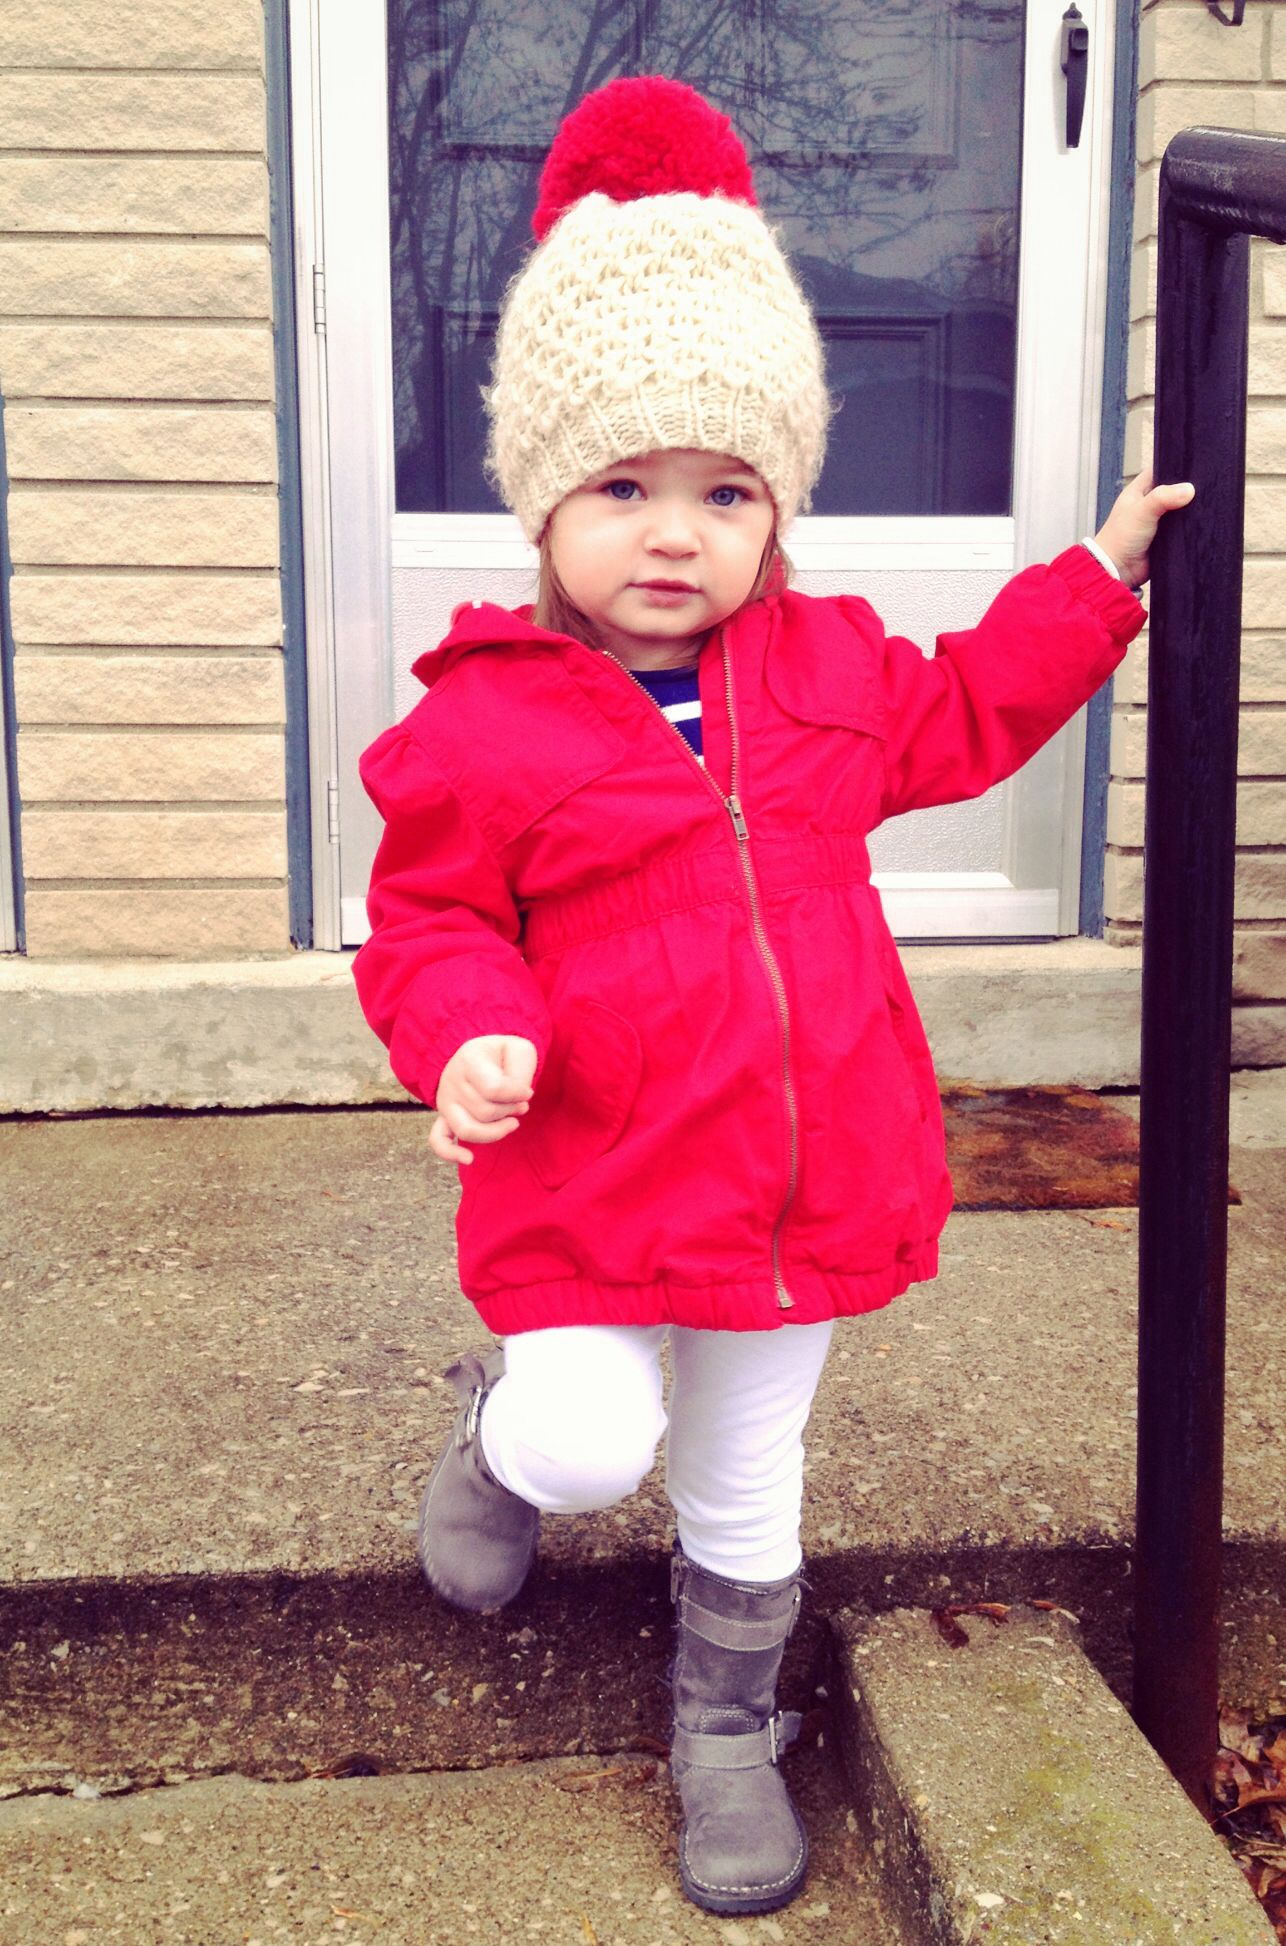 Kids fashion Little girls red coat and hat from old navy Such a